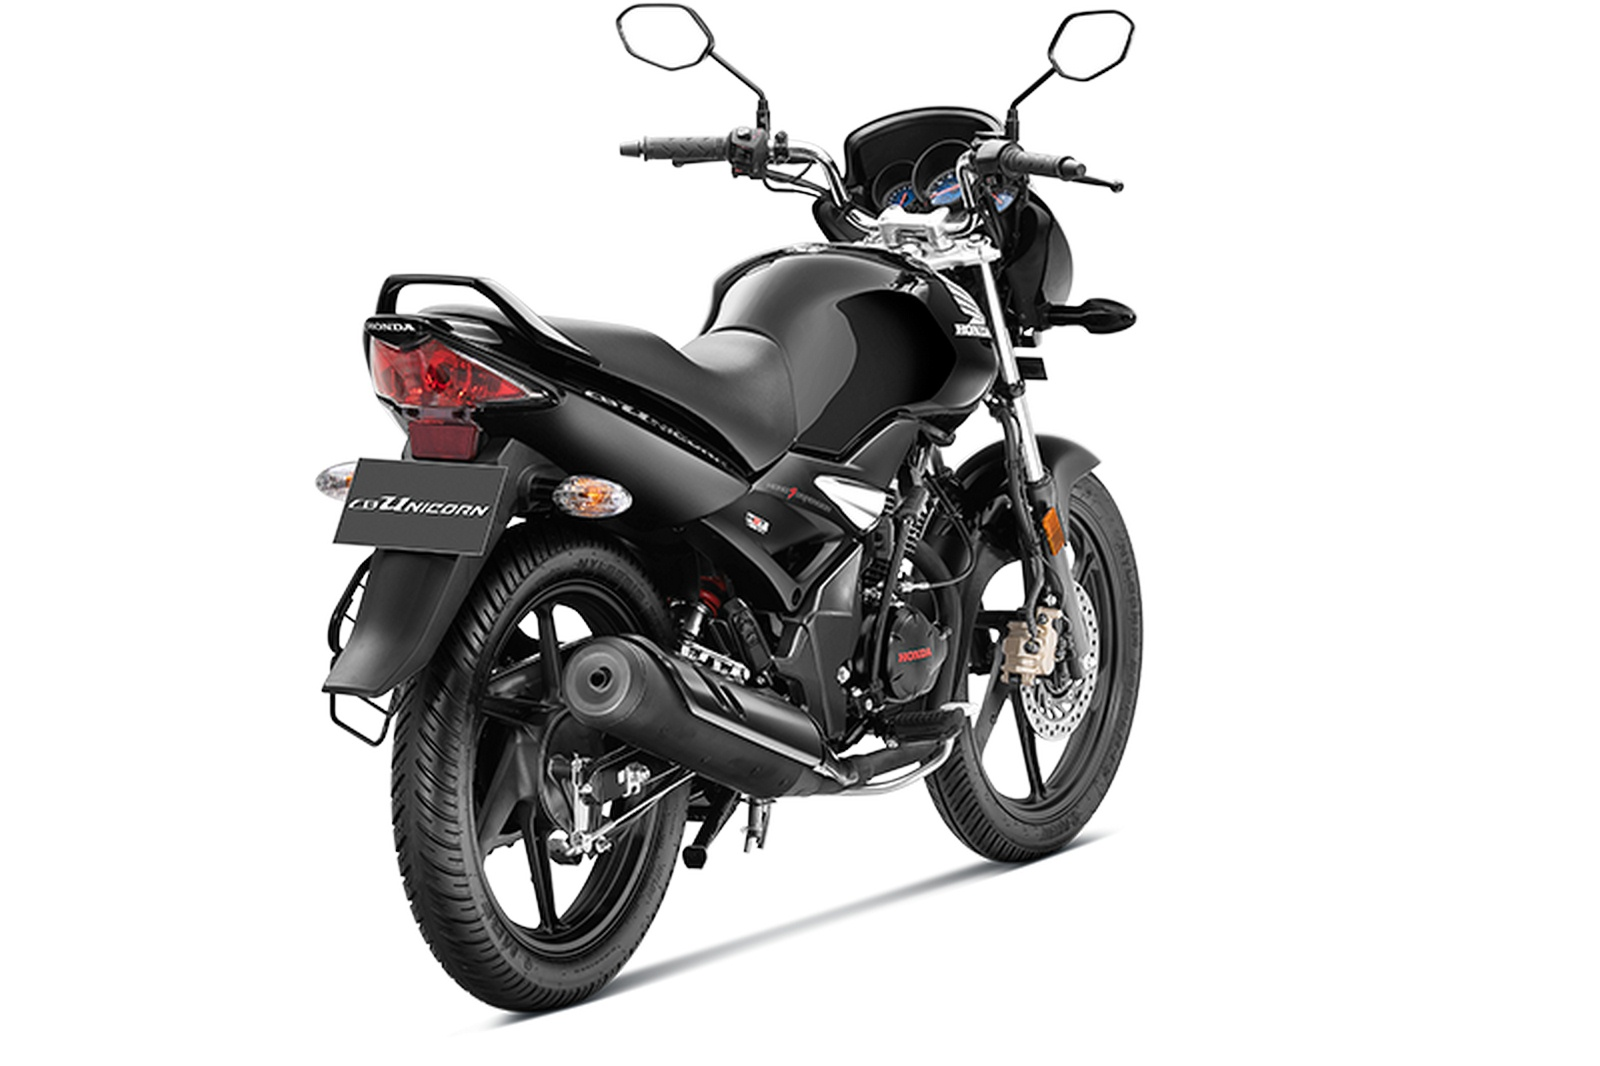 2019 honda unicorn 150 abs launched